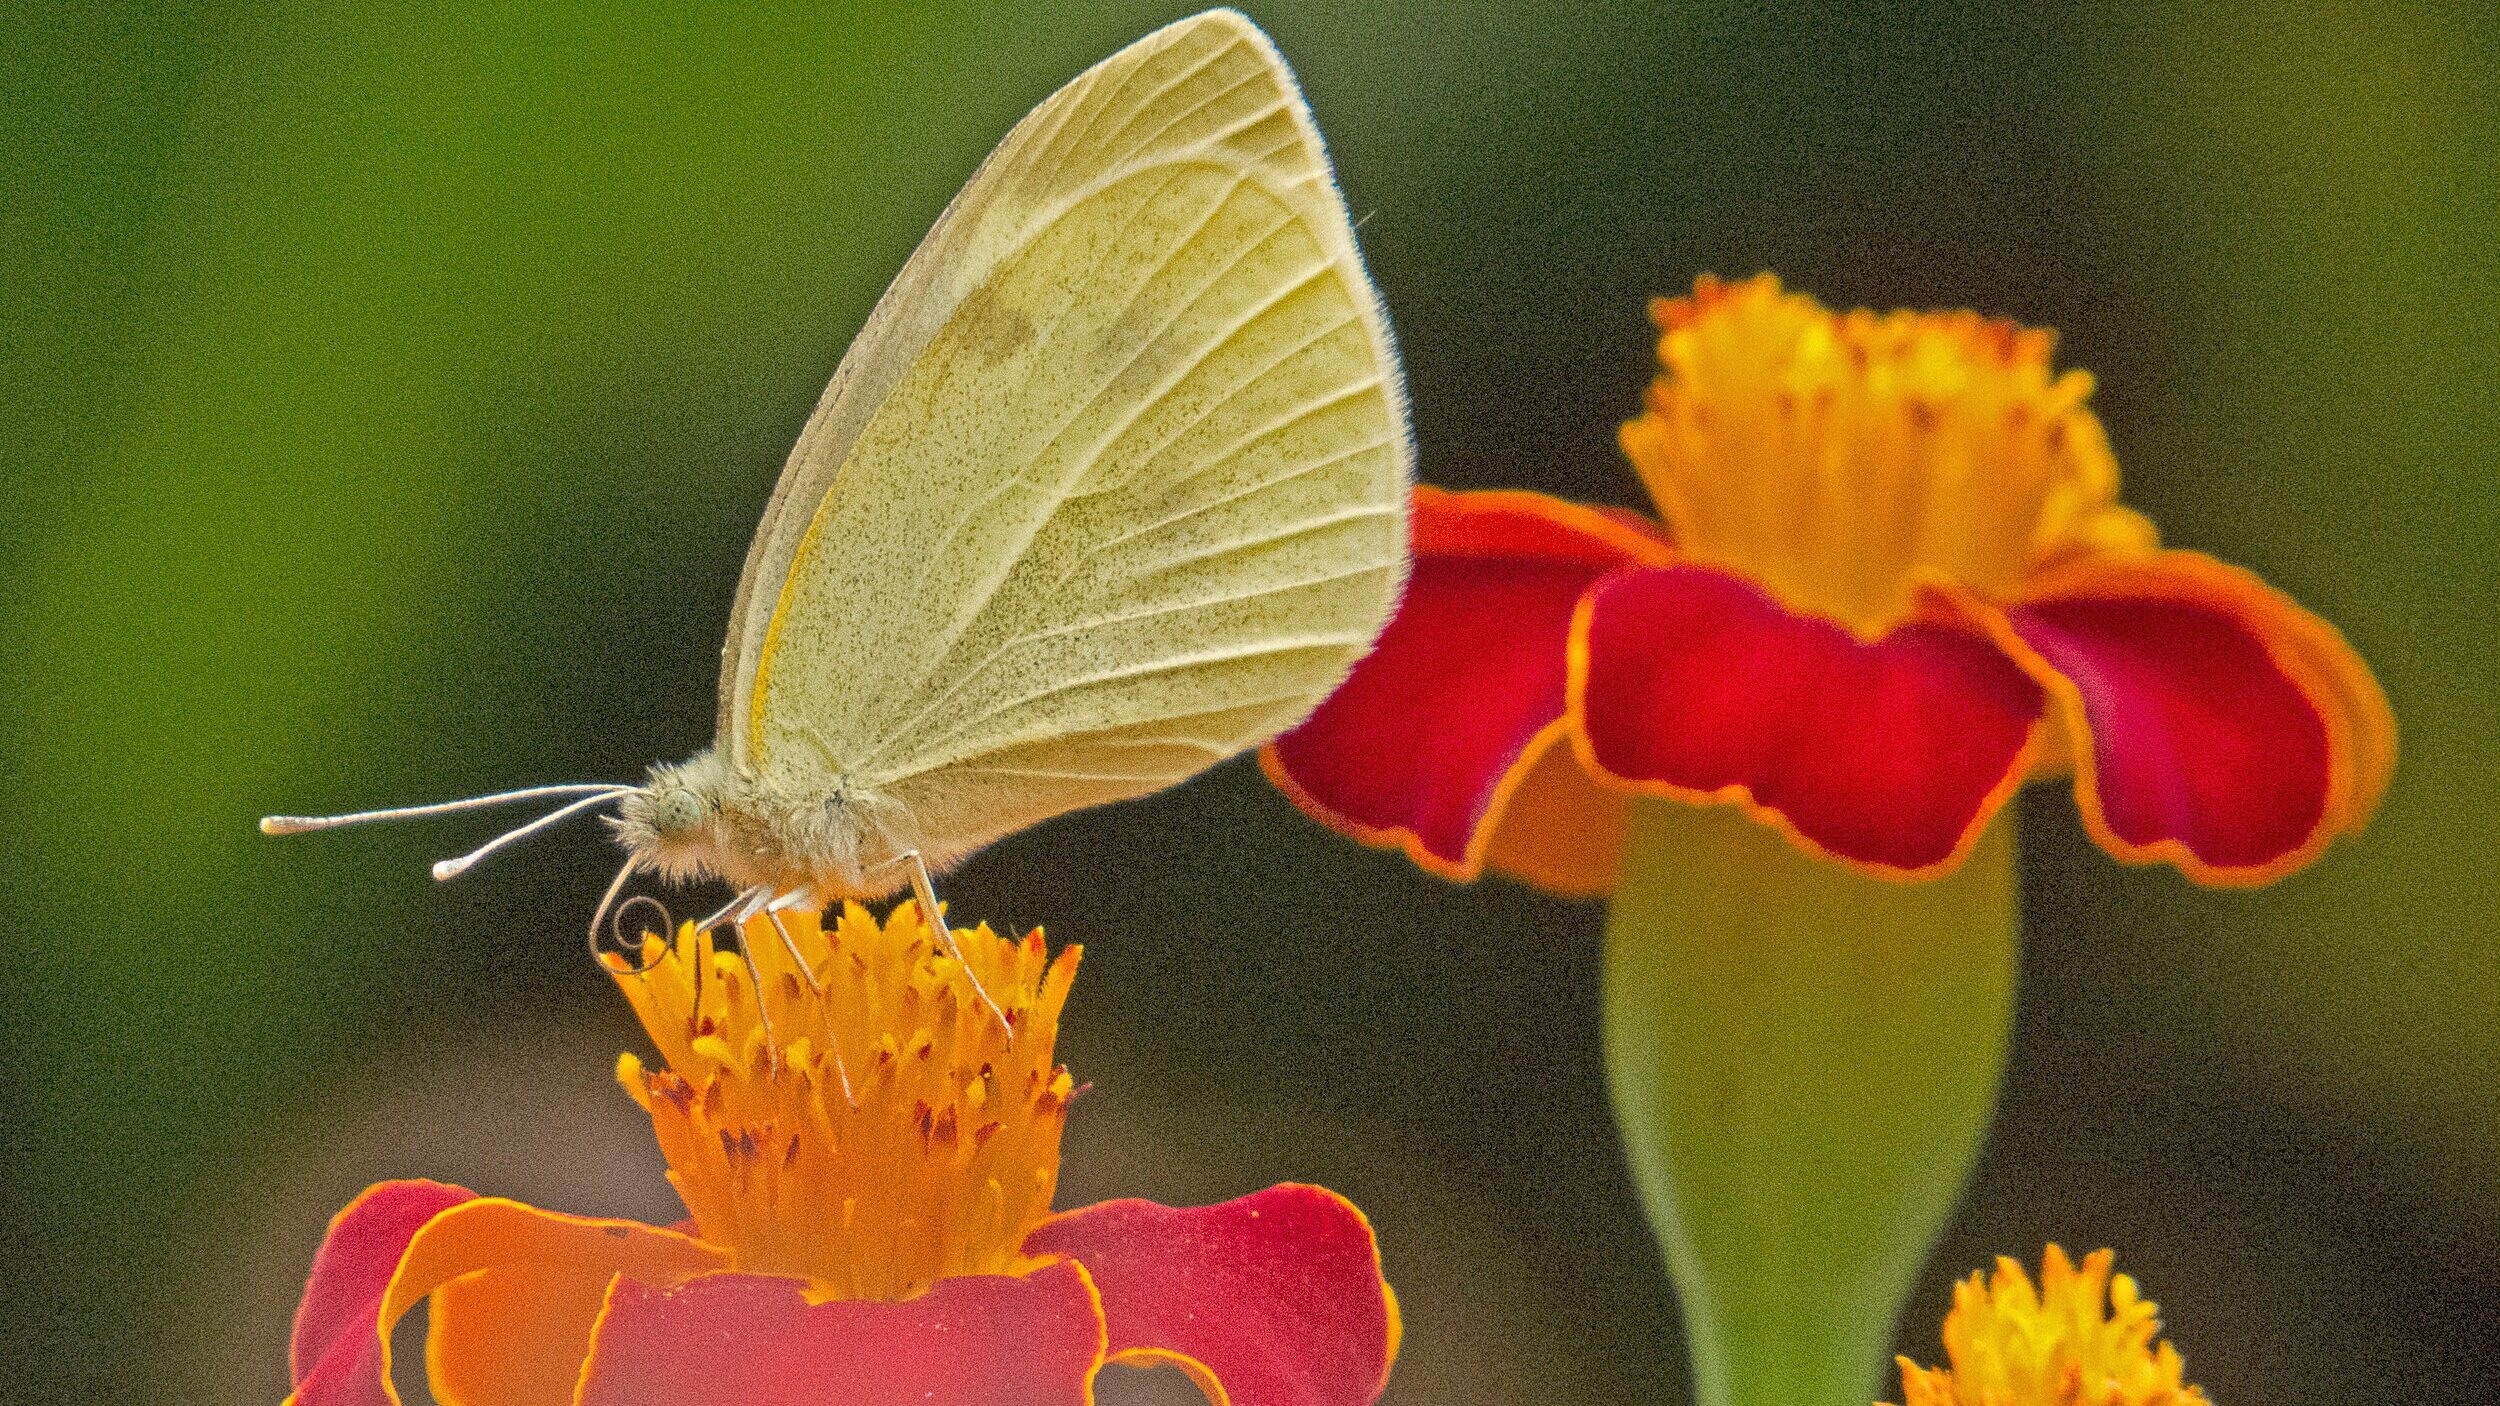 Marigold seeds are easy to save and share. Single petaled varieties are attractive to butterflies, like this Cabbage White